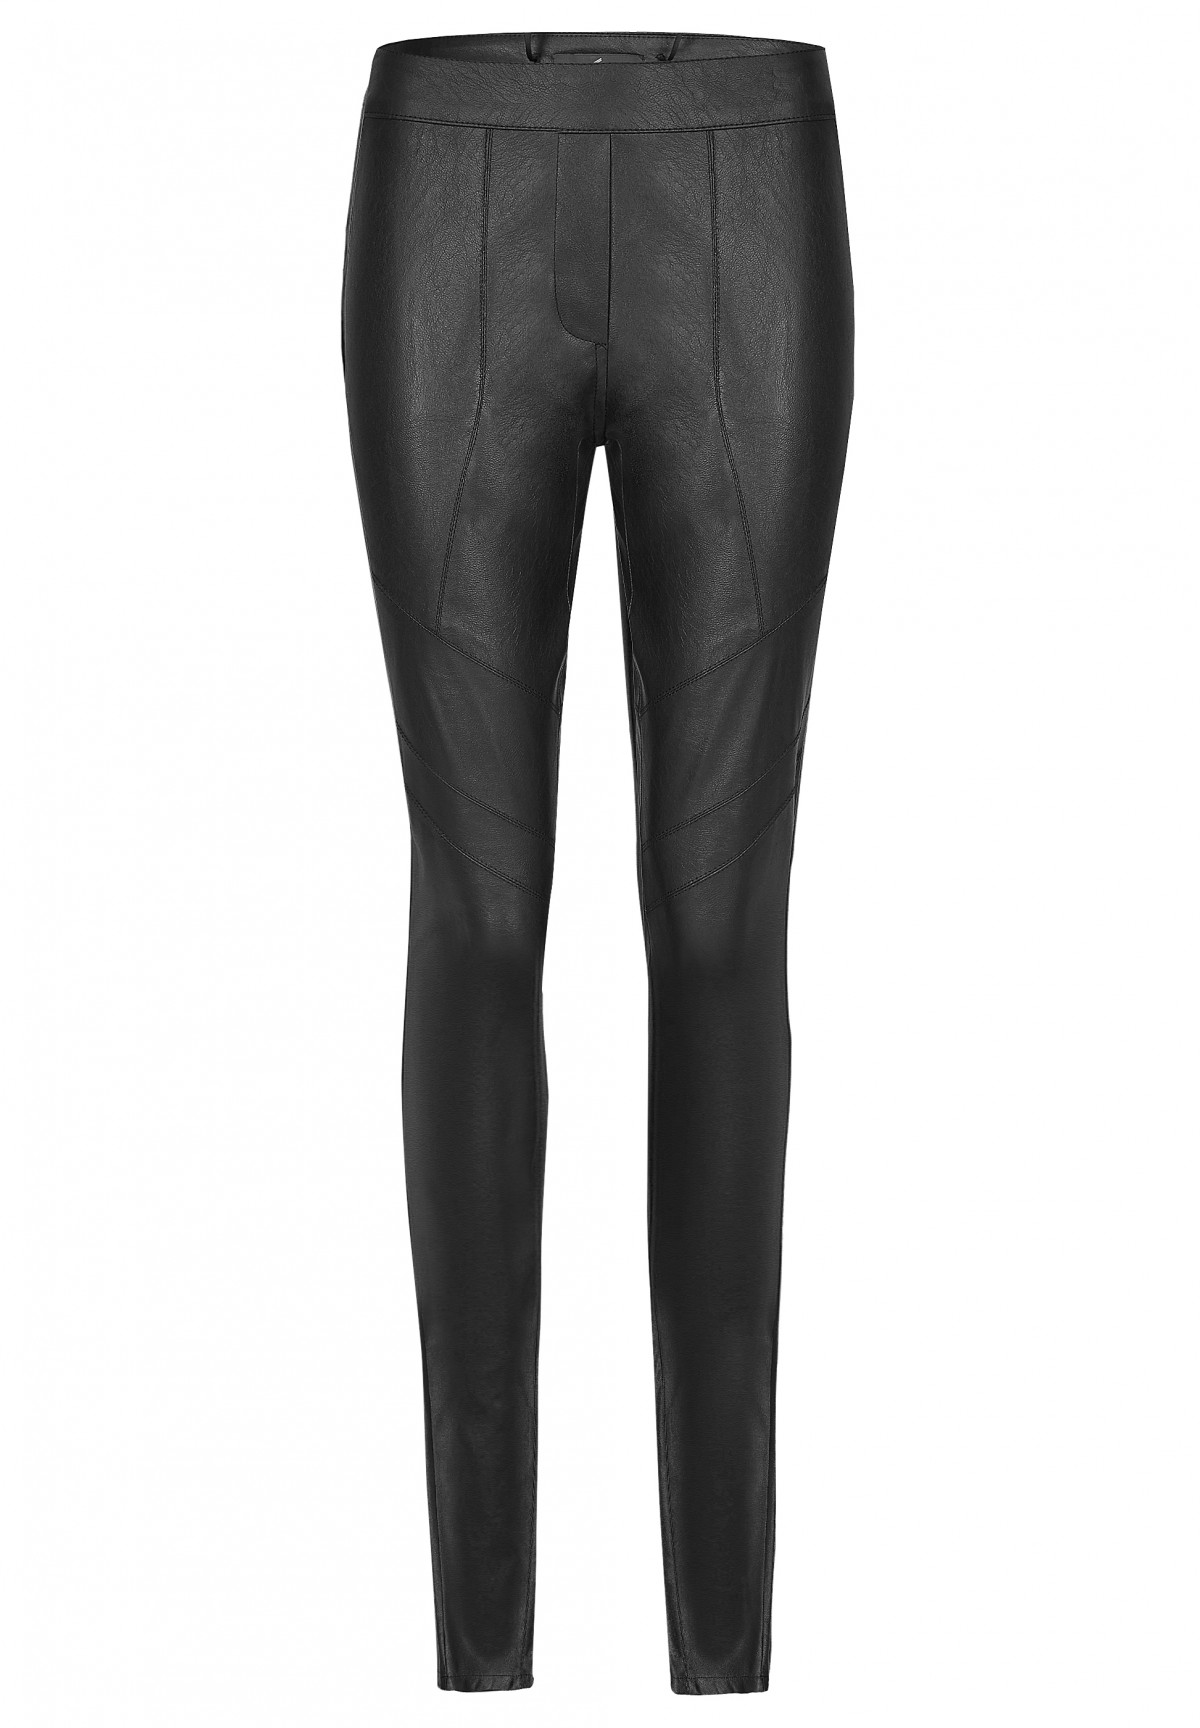 Modische Leggings / Fake Leather Pants